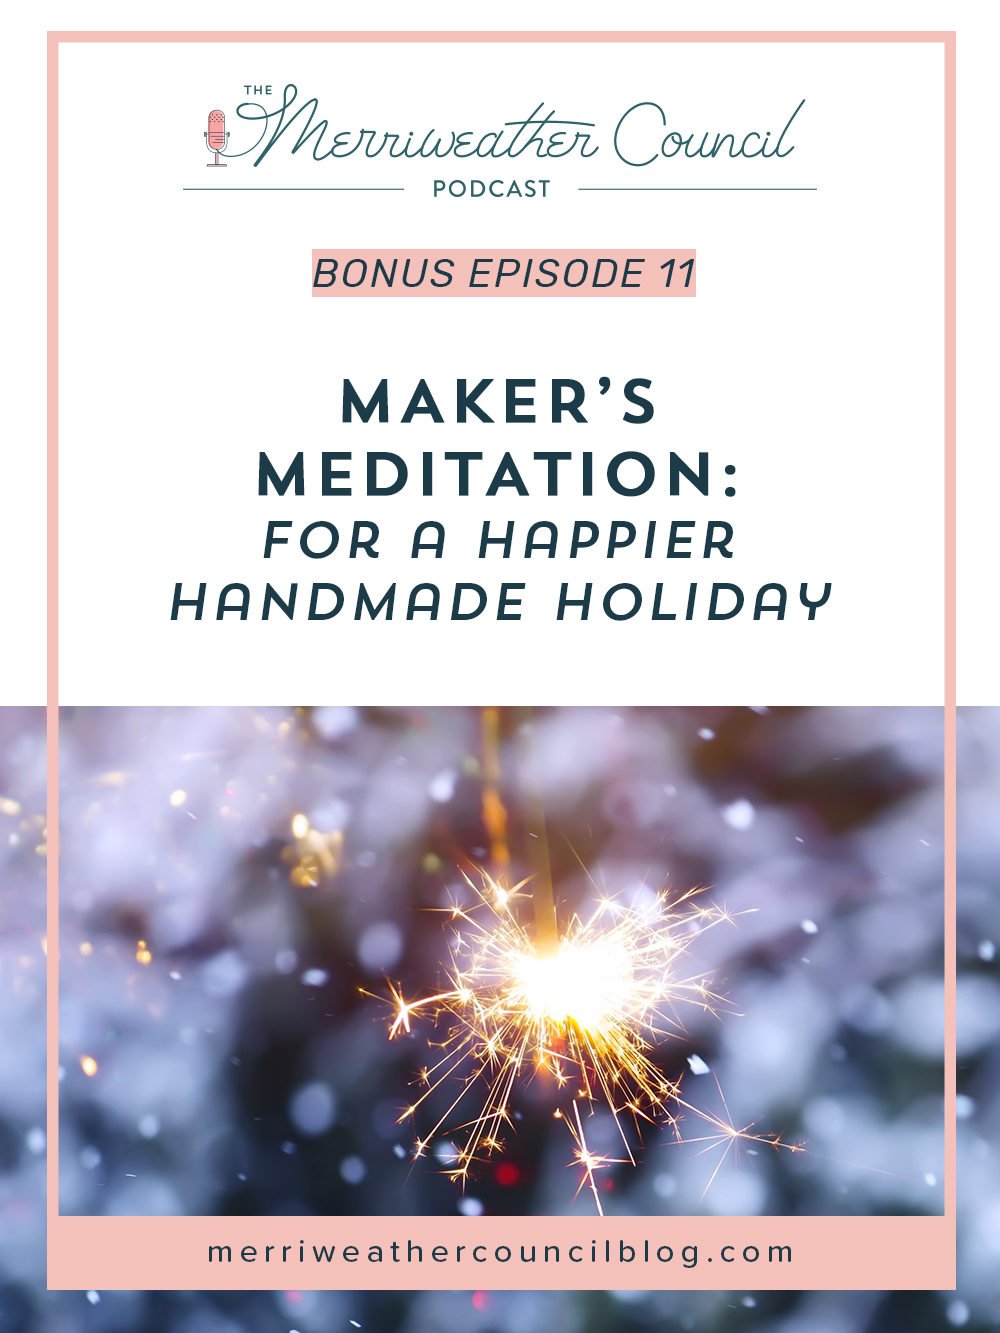 the maker's meditation | the merriweather council podcast